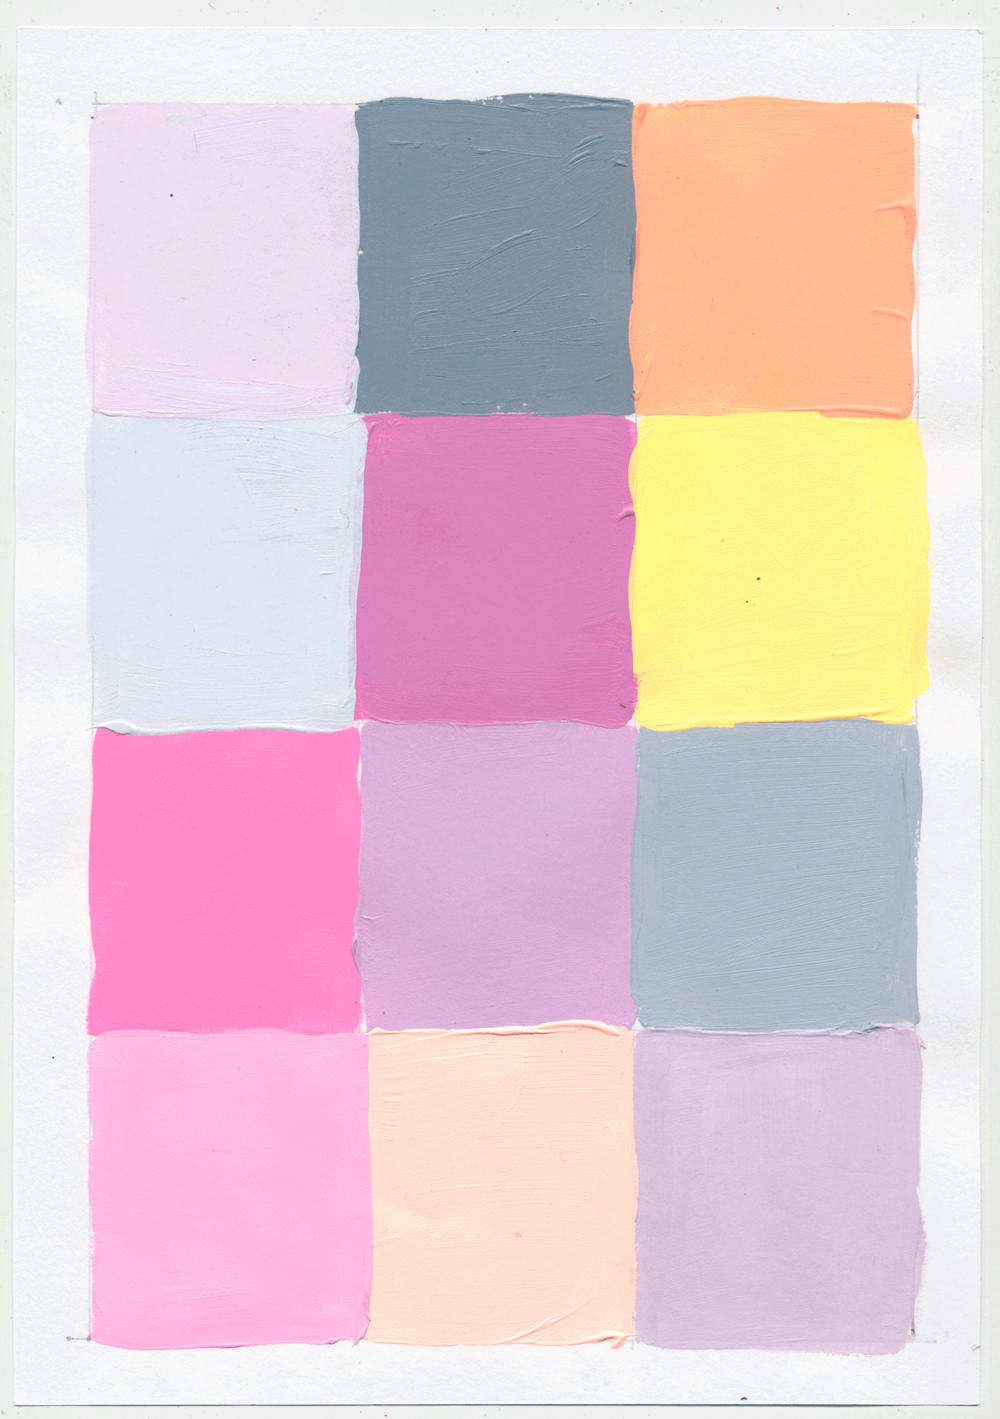 "NY1746 10"" X 7"", acrylic on paper, 2017  available on Etsy   12 little squares to help figure out the intricacies of pink, yellow & blue. there's NEVER an end to  figuring it out,  cuz you don't. PLAY!"